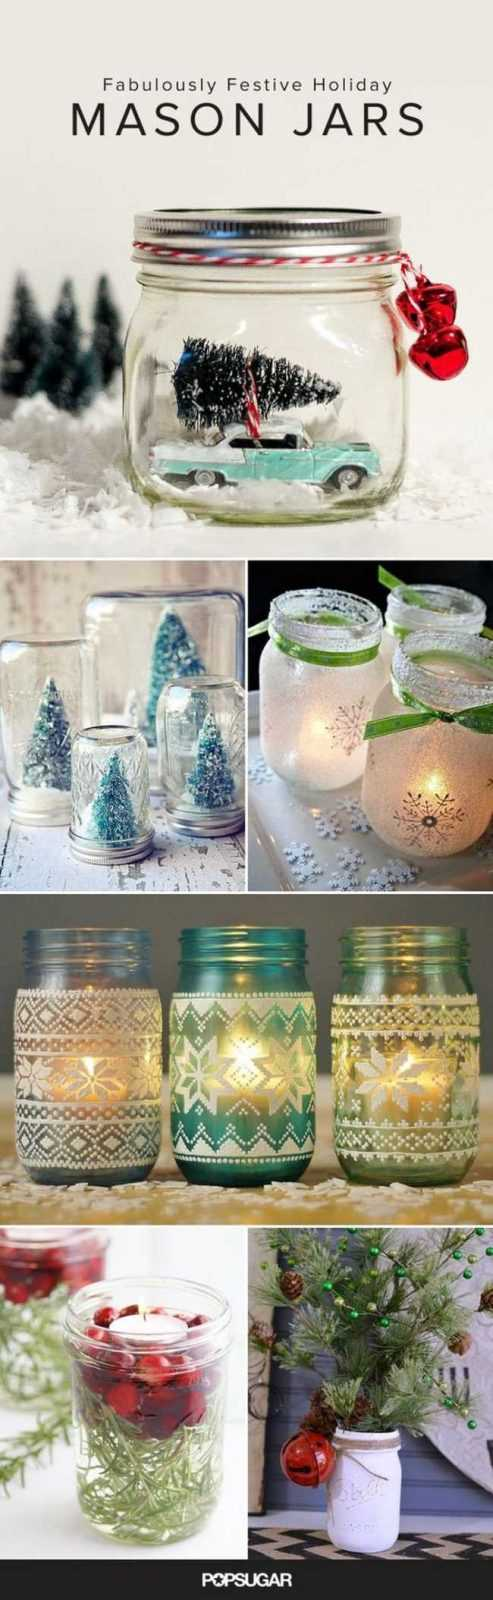 eight-wonderful-holiday-diy-ideas-and-projects-2